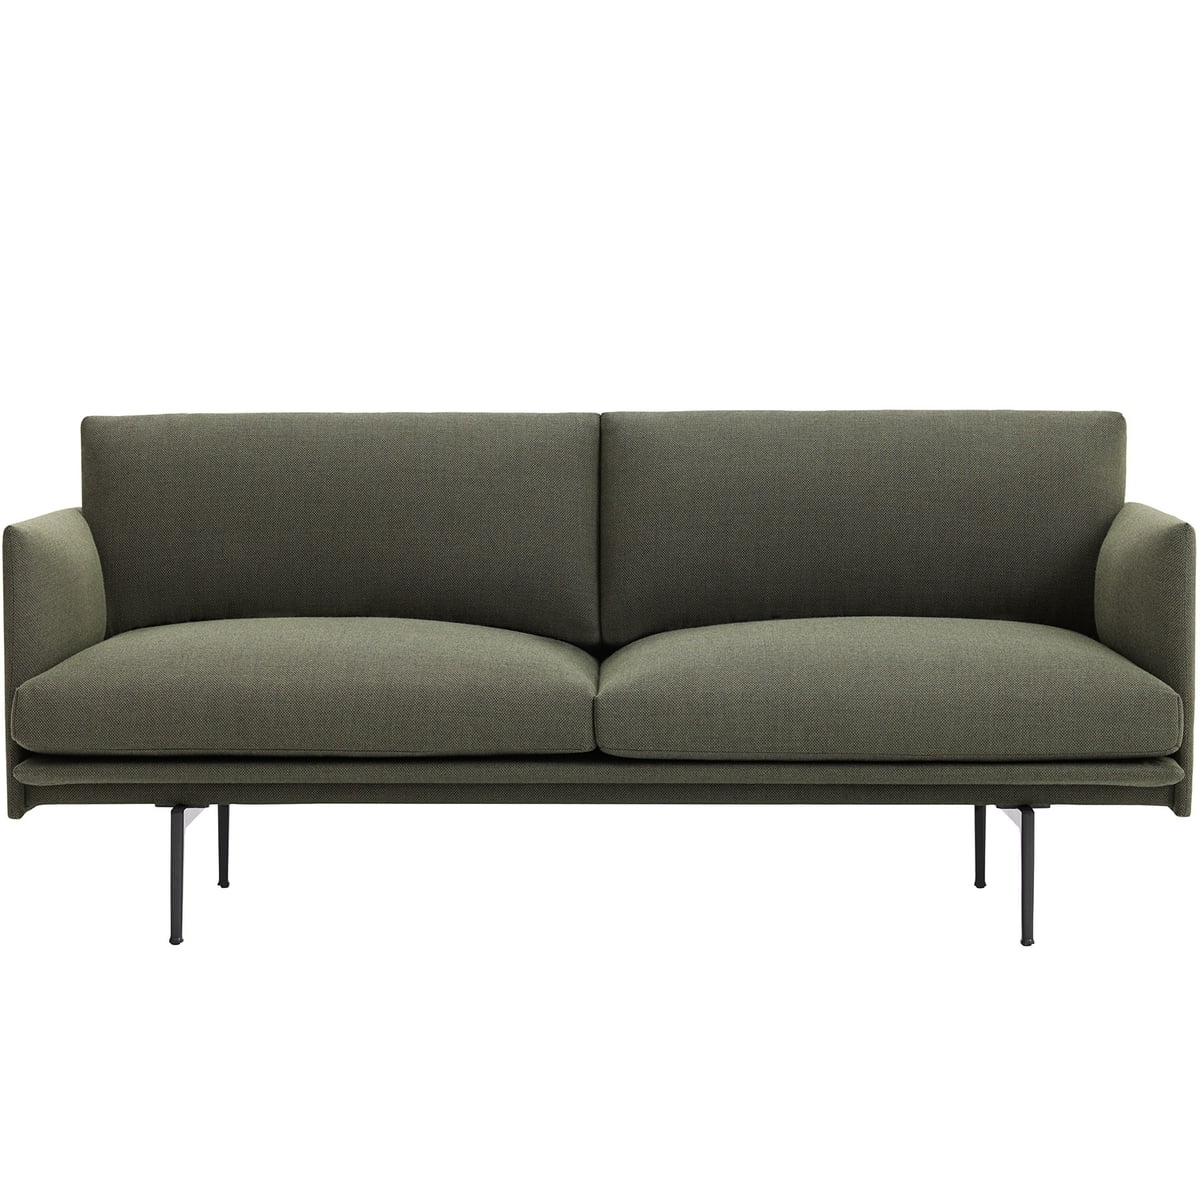 Trendy 2 Seater Sofas Inside Outline Sofa 2 Seatermuuto In The Shop (View 15 of 20)